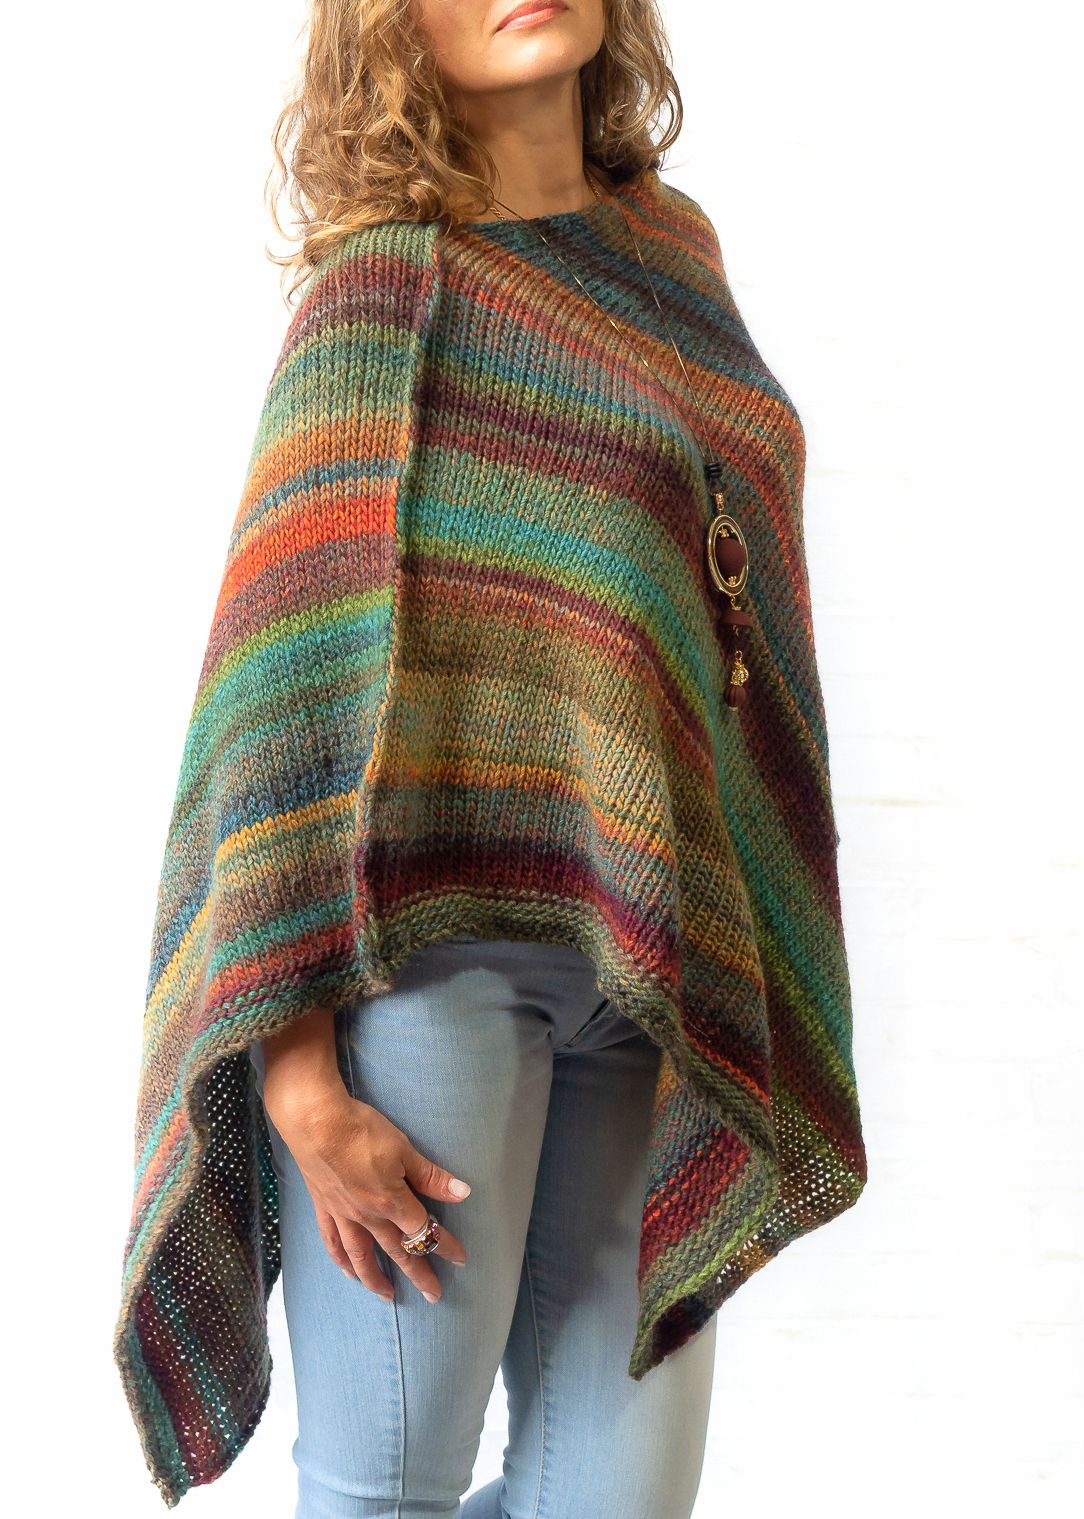 Knit Ponchos | Handmade poncho sweater for women, Wool